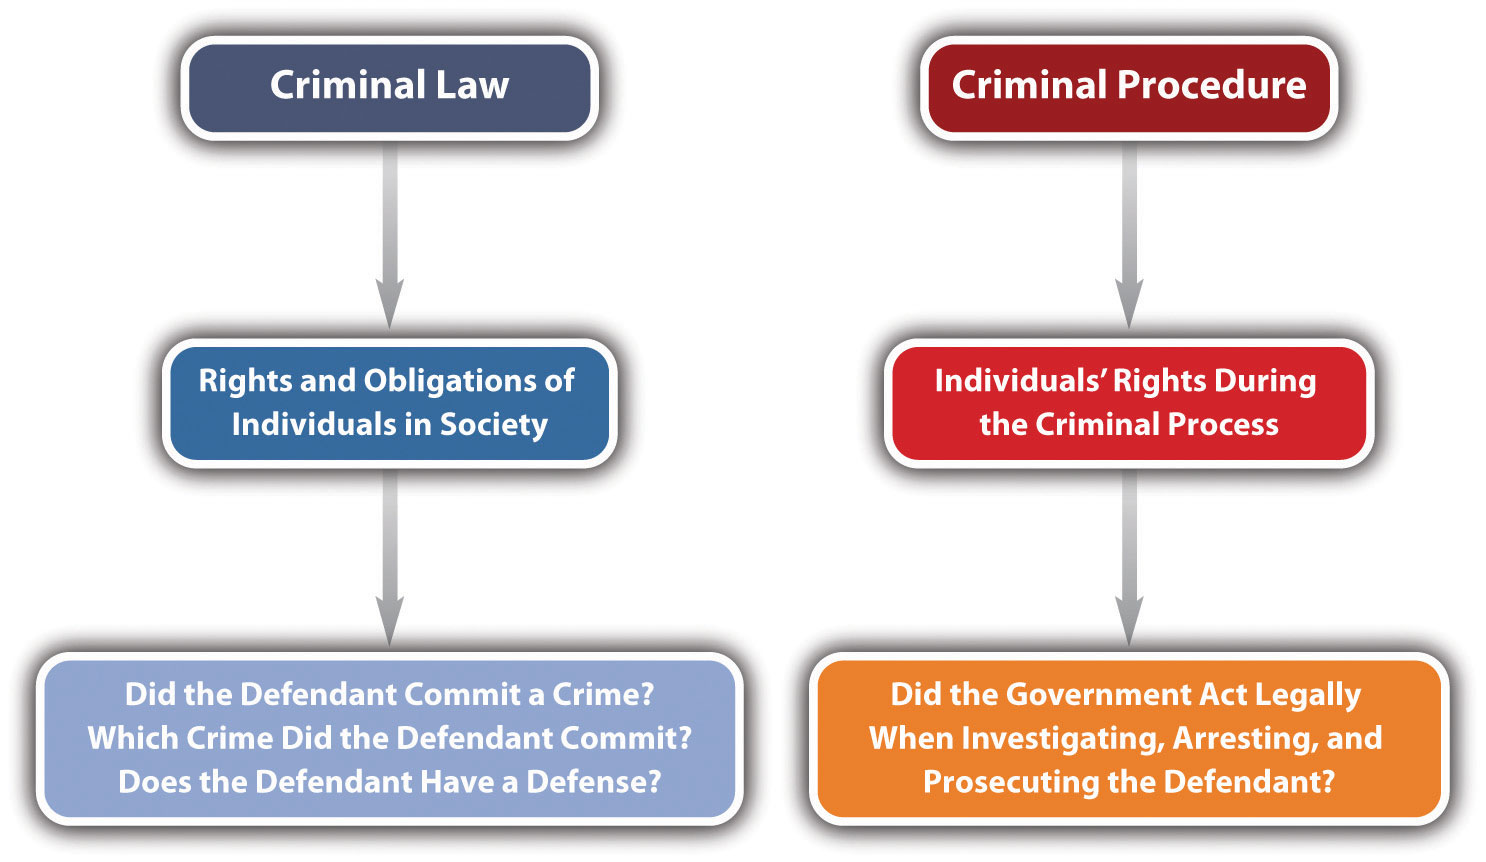 criminal law 1 Lexisnexis capsule summary criminal law chapter 1 theory, sources, and limitations of criminal law § 101 theories of criminal punishment [a] utilitarianism [1] deterrence – the utilitarian theory is essentially one of deterrence – punishment is justifiable if, but only if, it is expected to result in a reduction of crime.